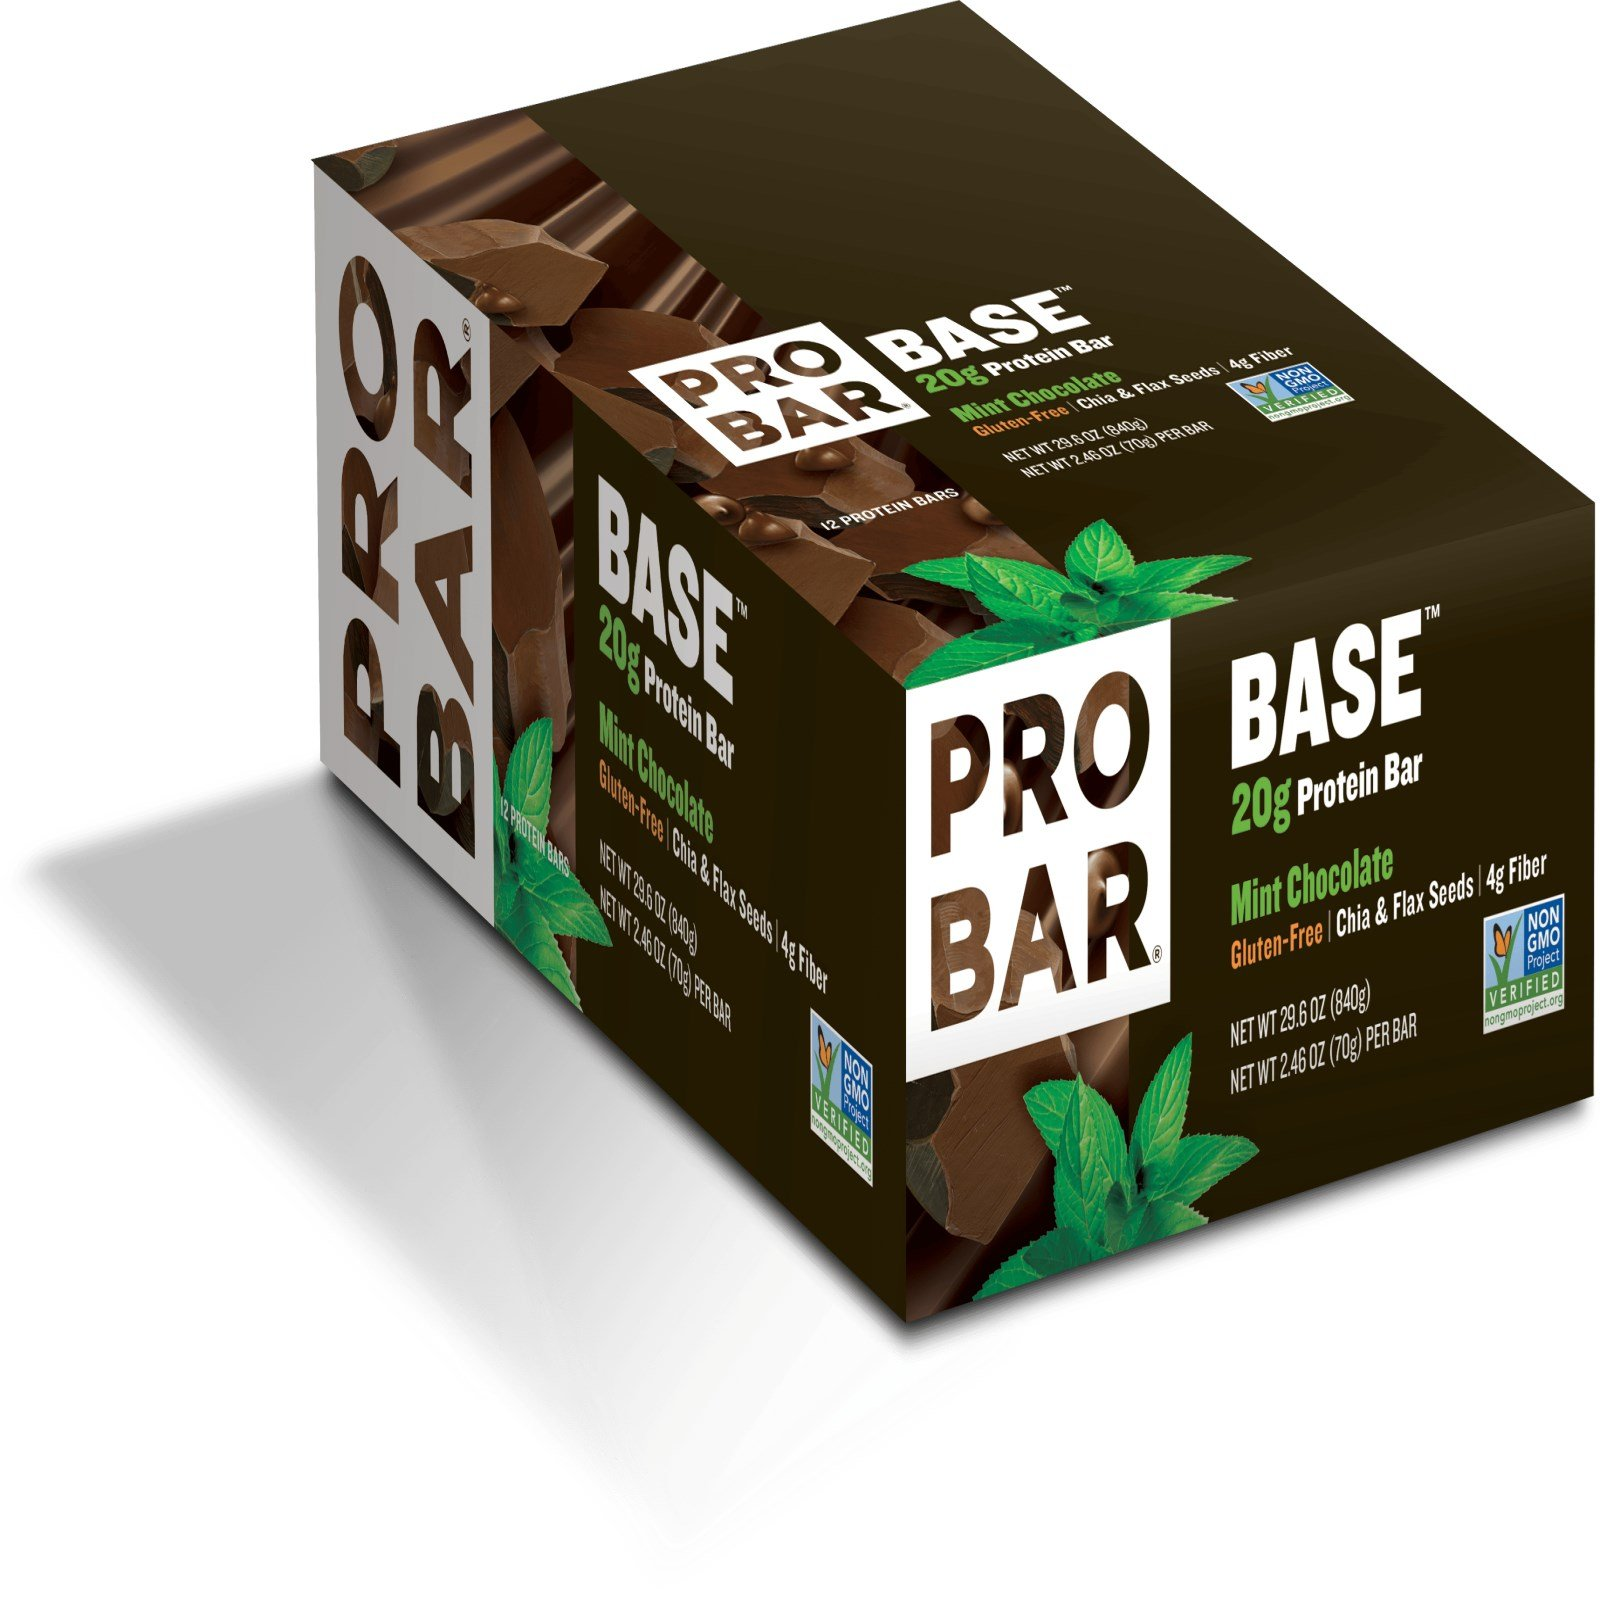 ProBar, Base, 20 g Protein Bar, Mint Chocolate, 12 Bars, 2.46 oz (70 g) Each - 3PC by Probar